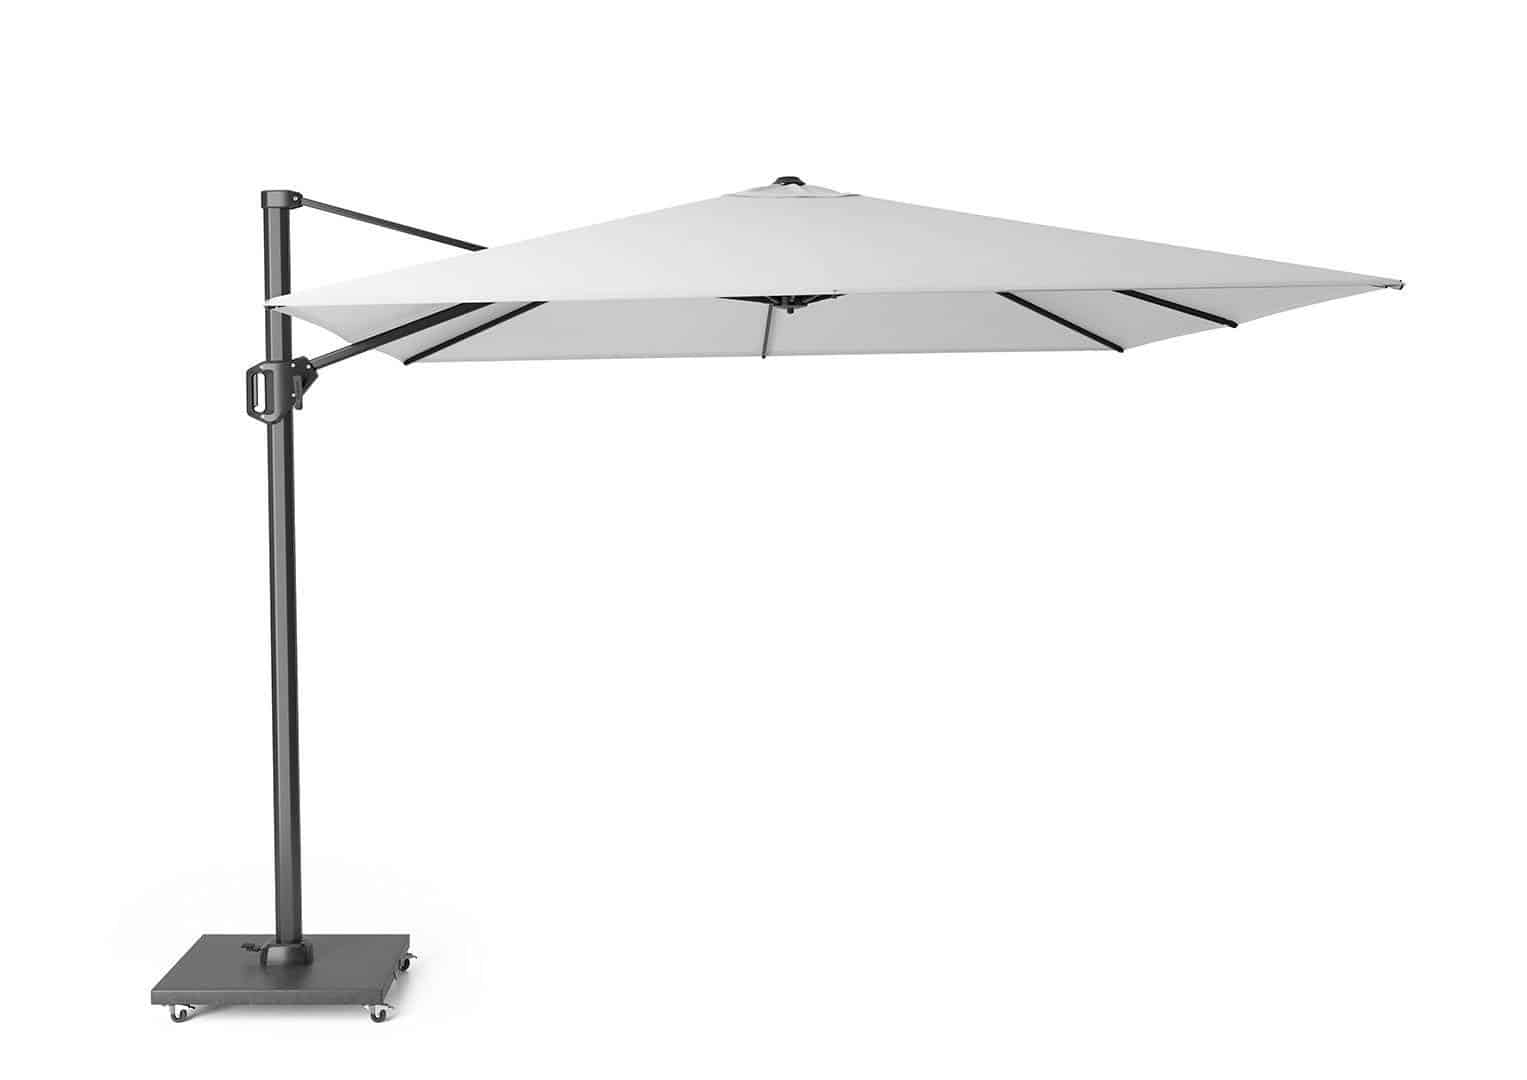 Parasol ogrodowy Challenger T1 3 m x 3 m white 259